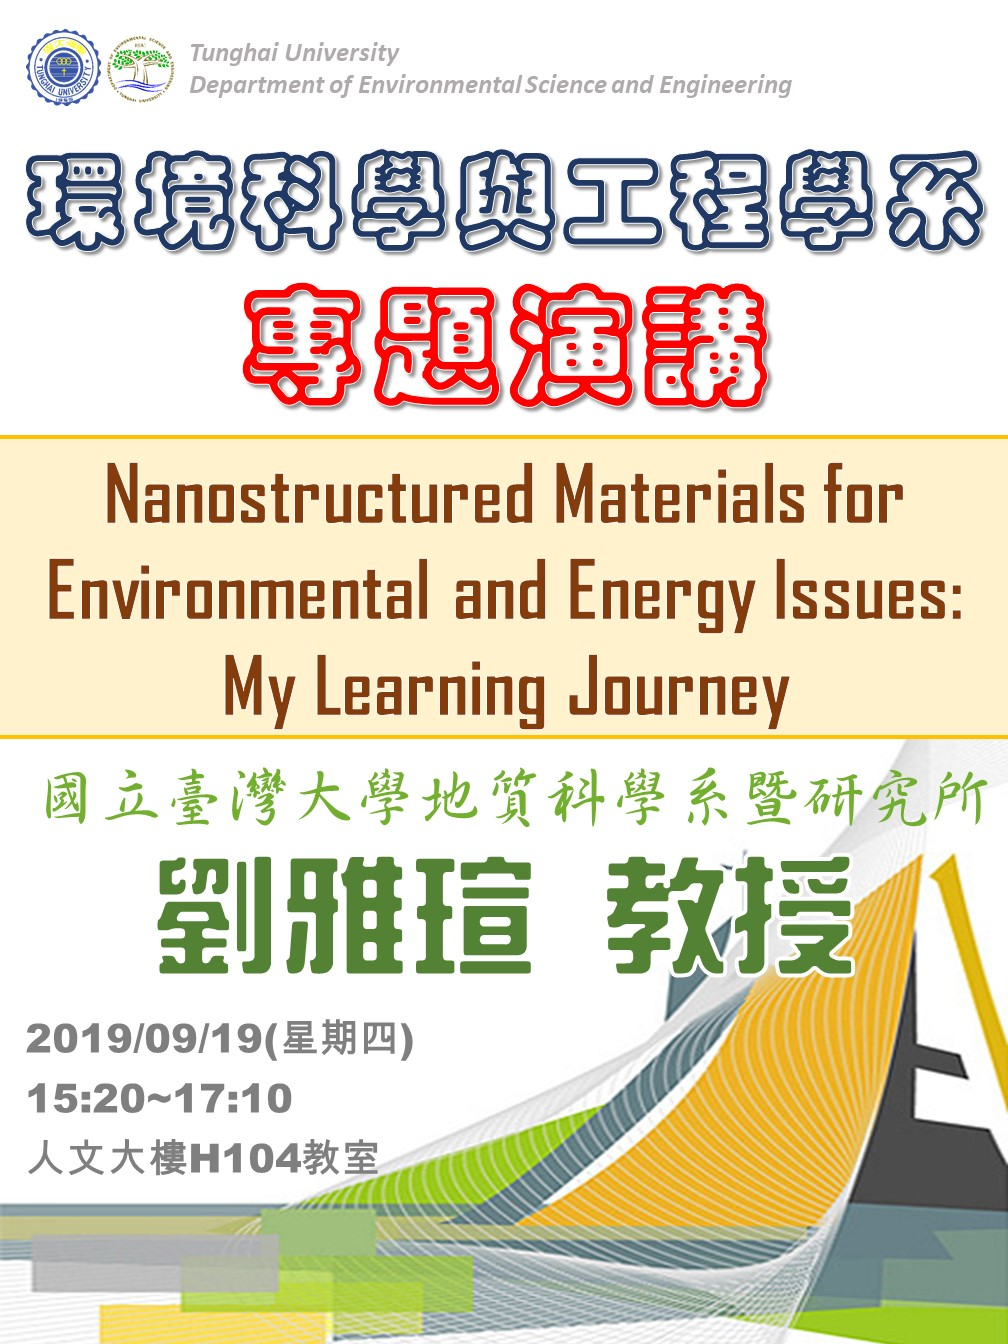 Nanostructured Materials for Environmental and Energy Issues: My Learning Journey